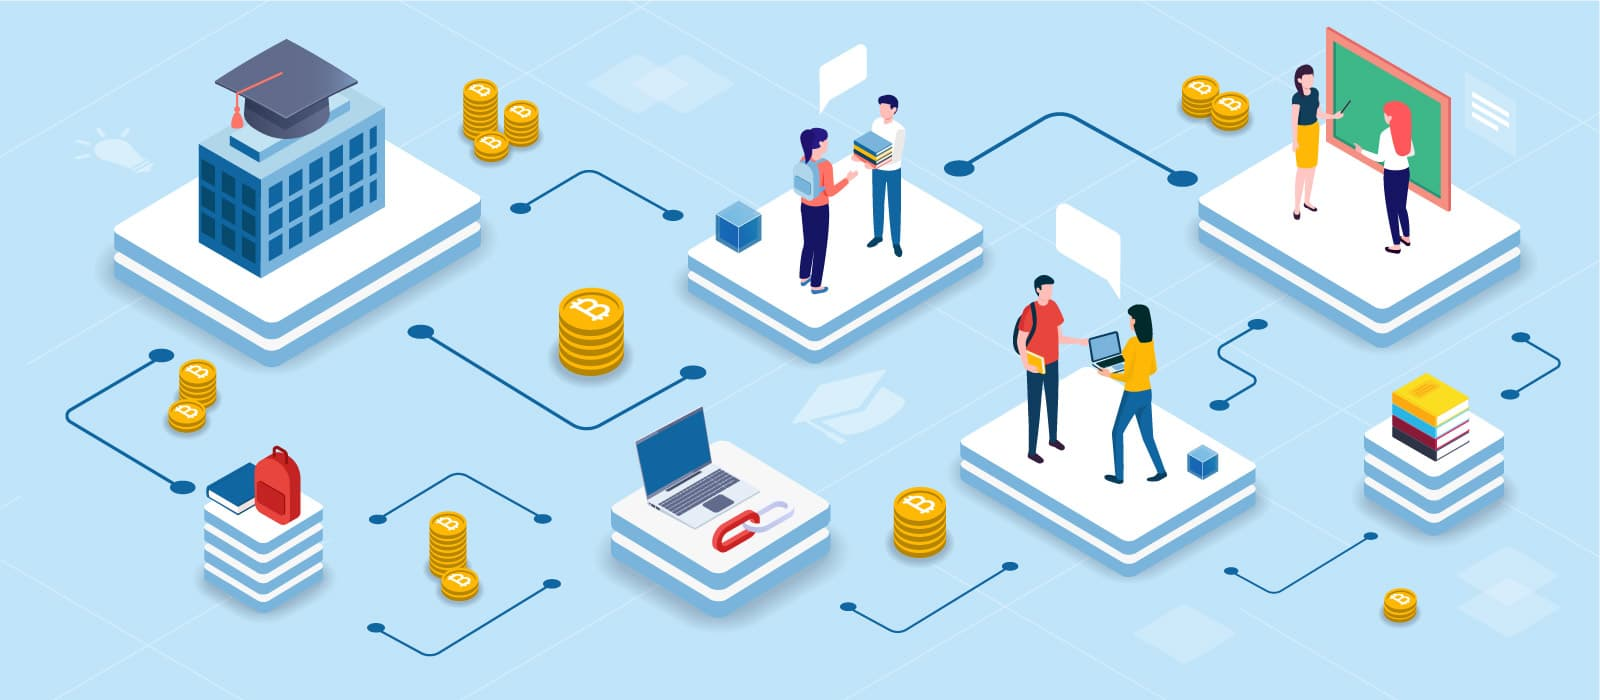 Blockchain Education Use Cases and Applications